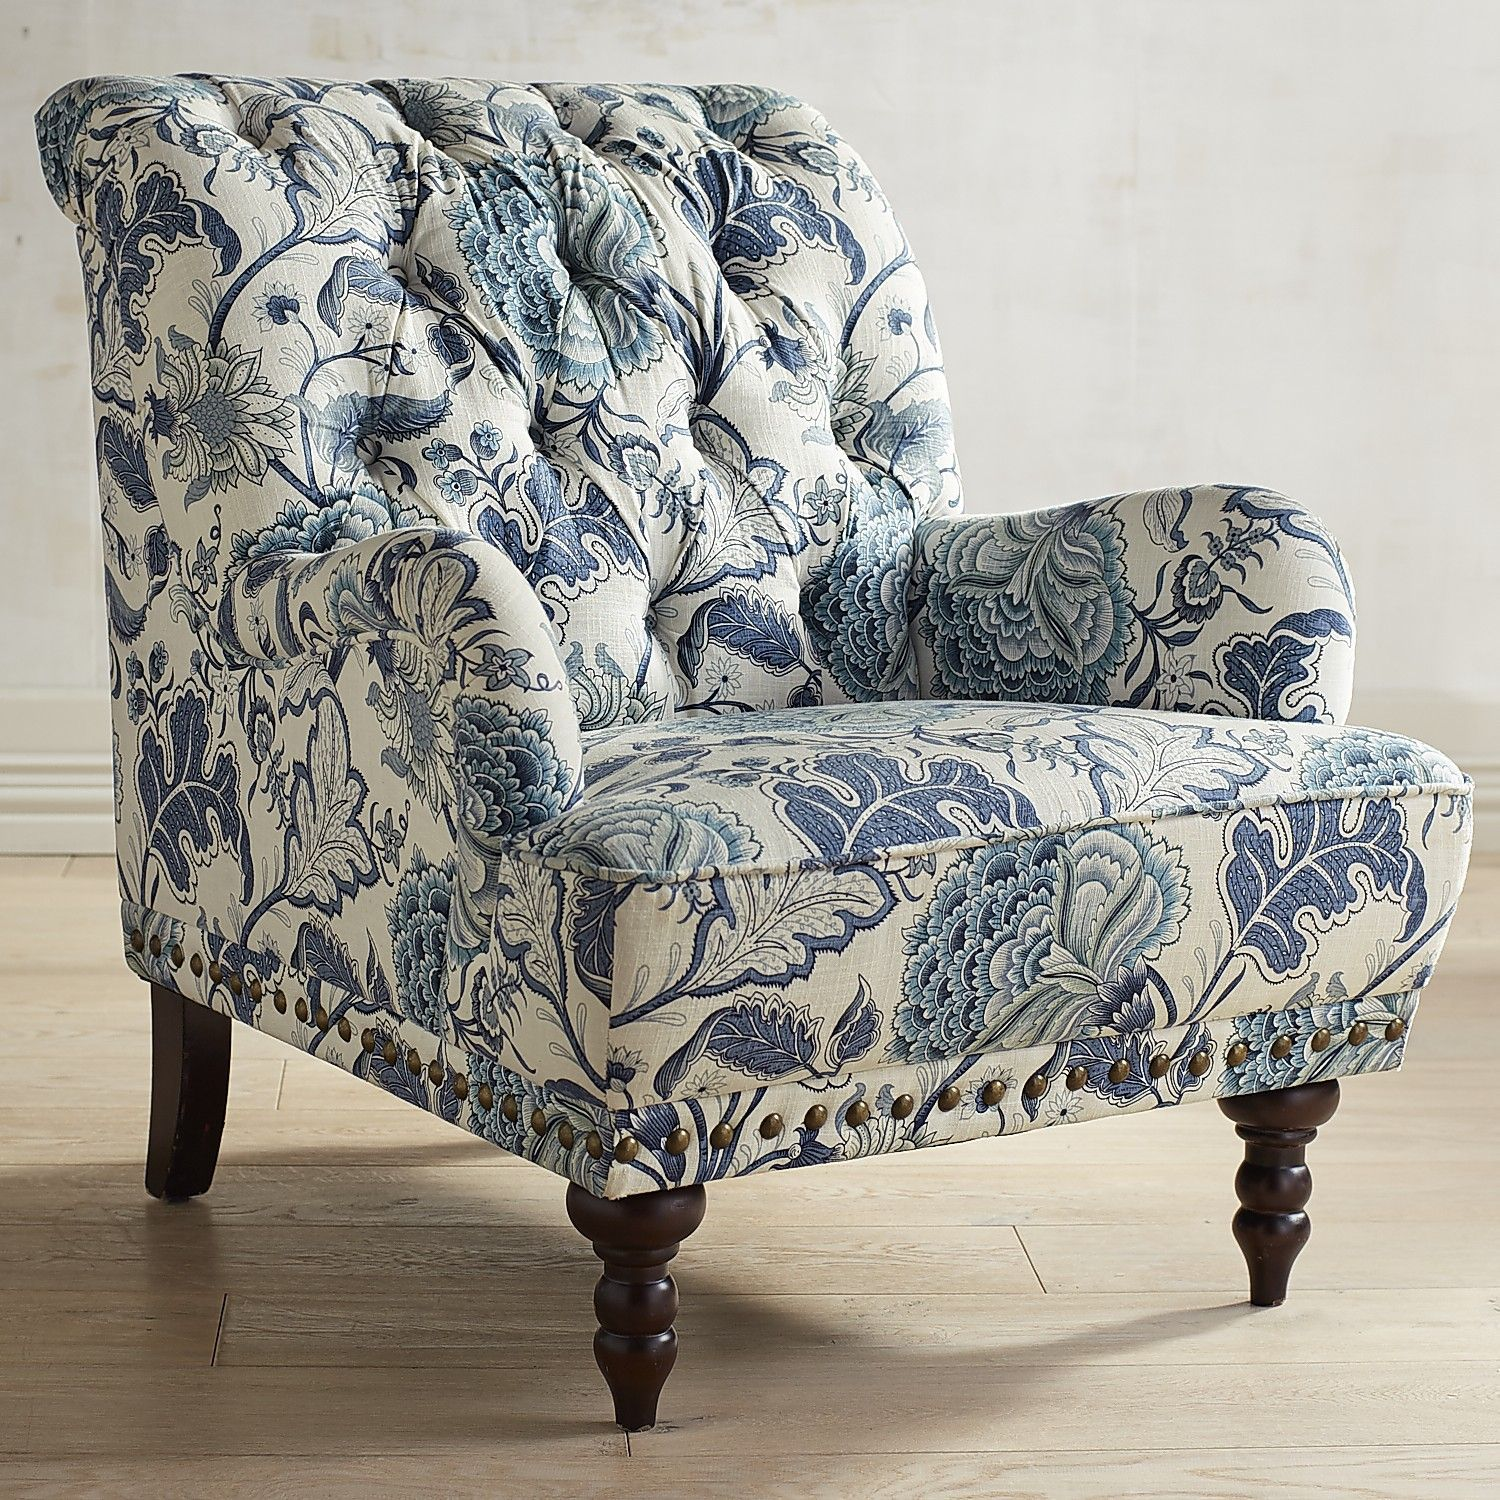 Blue Patterned Chair Chas Indigo Blue Floral Armchair Products Armchair